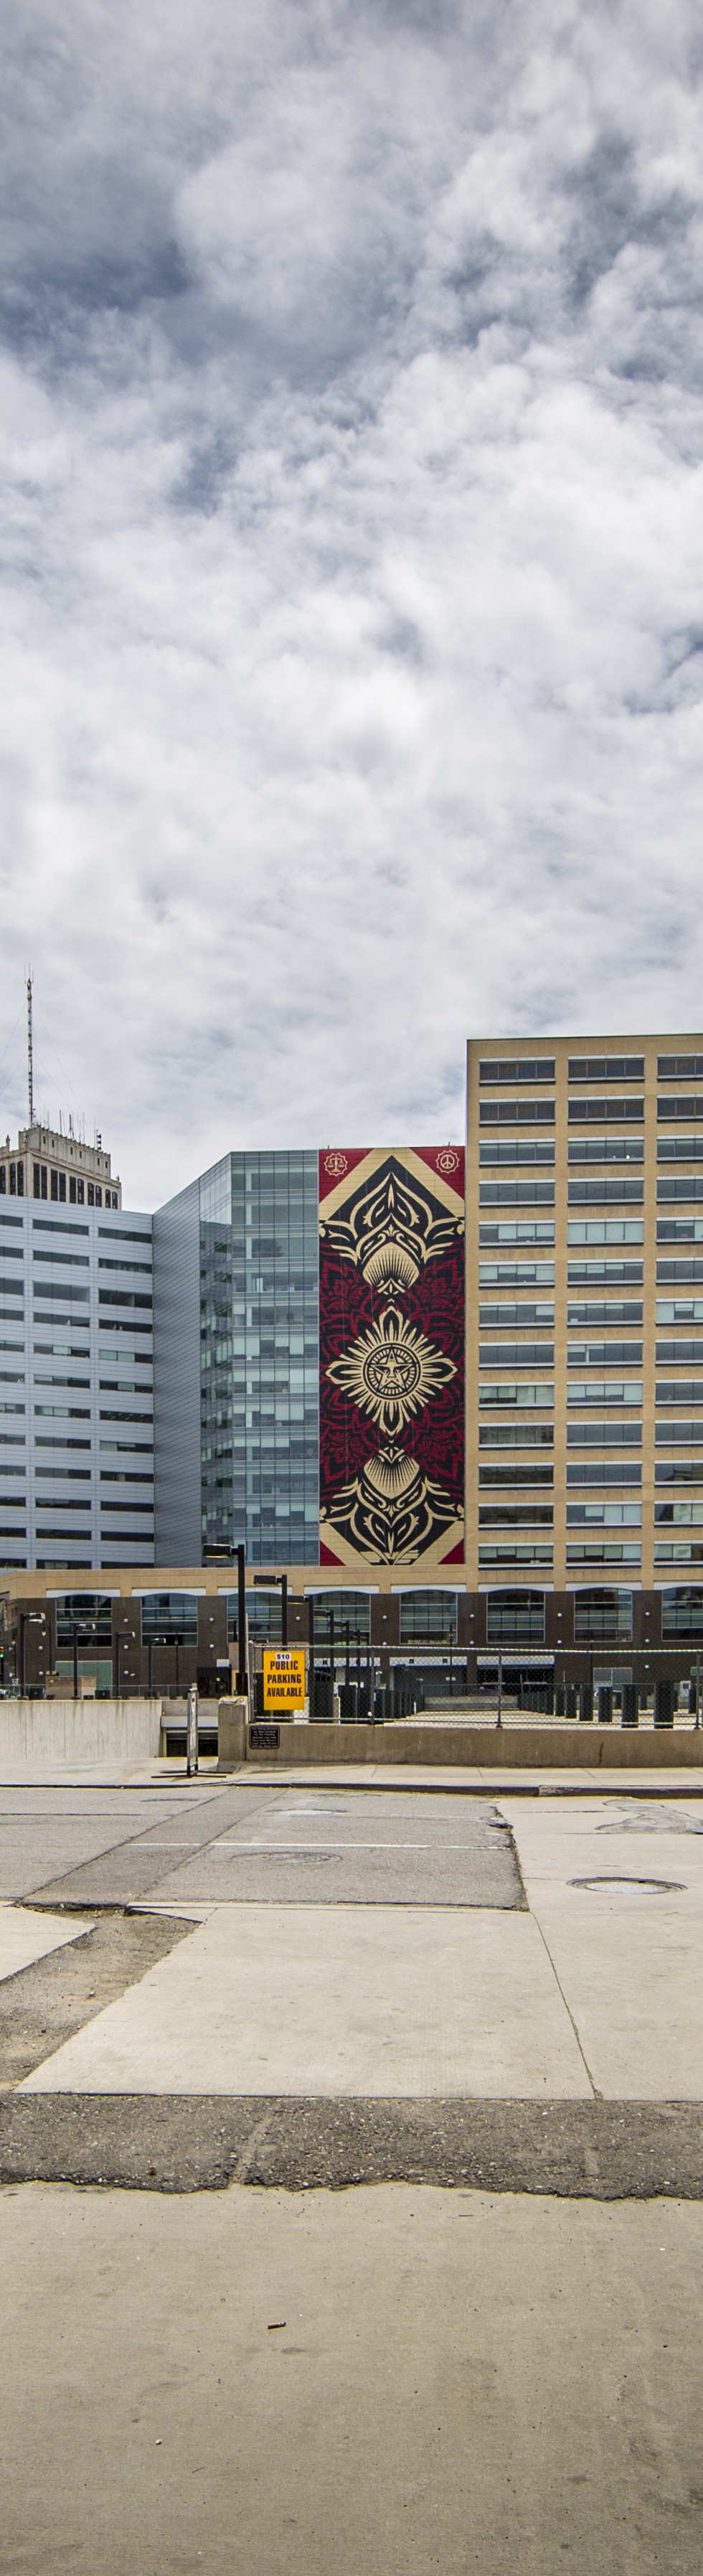 Shepard Fairey Completes His Largest Mural And Now It's Time To Celebrate